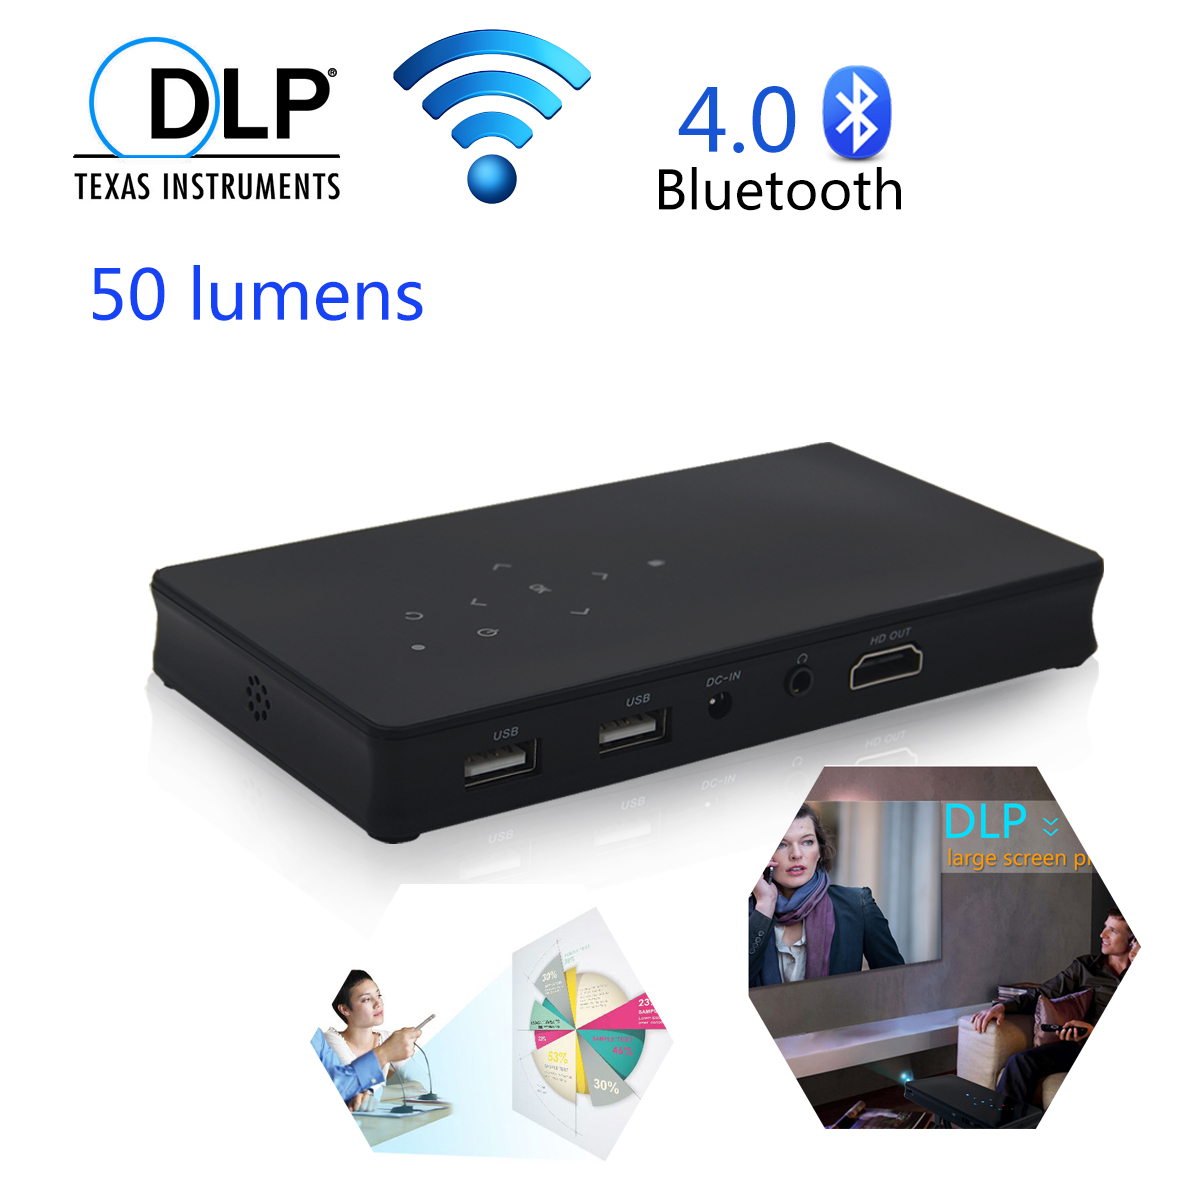 Portable Home Theater Cinema DLP Projector Android4.4 WiFi Bluetooth HDMI US home cinema(China (Mainland))